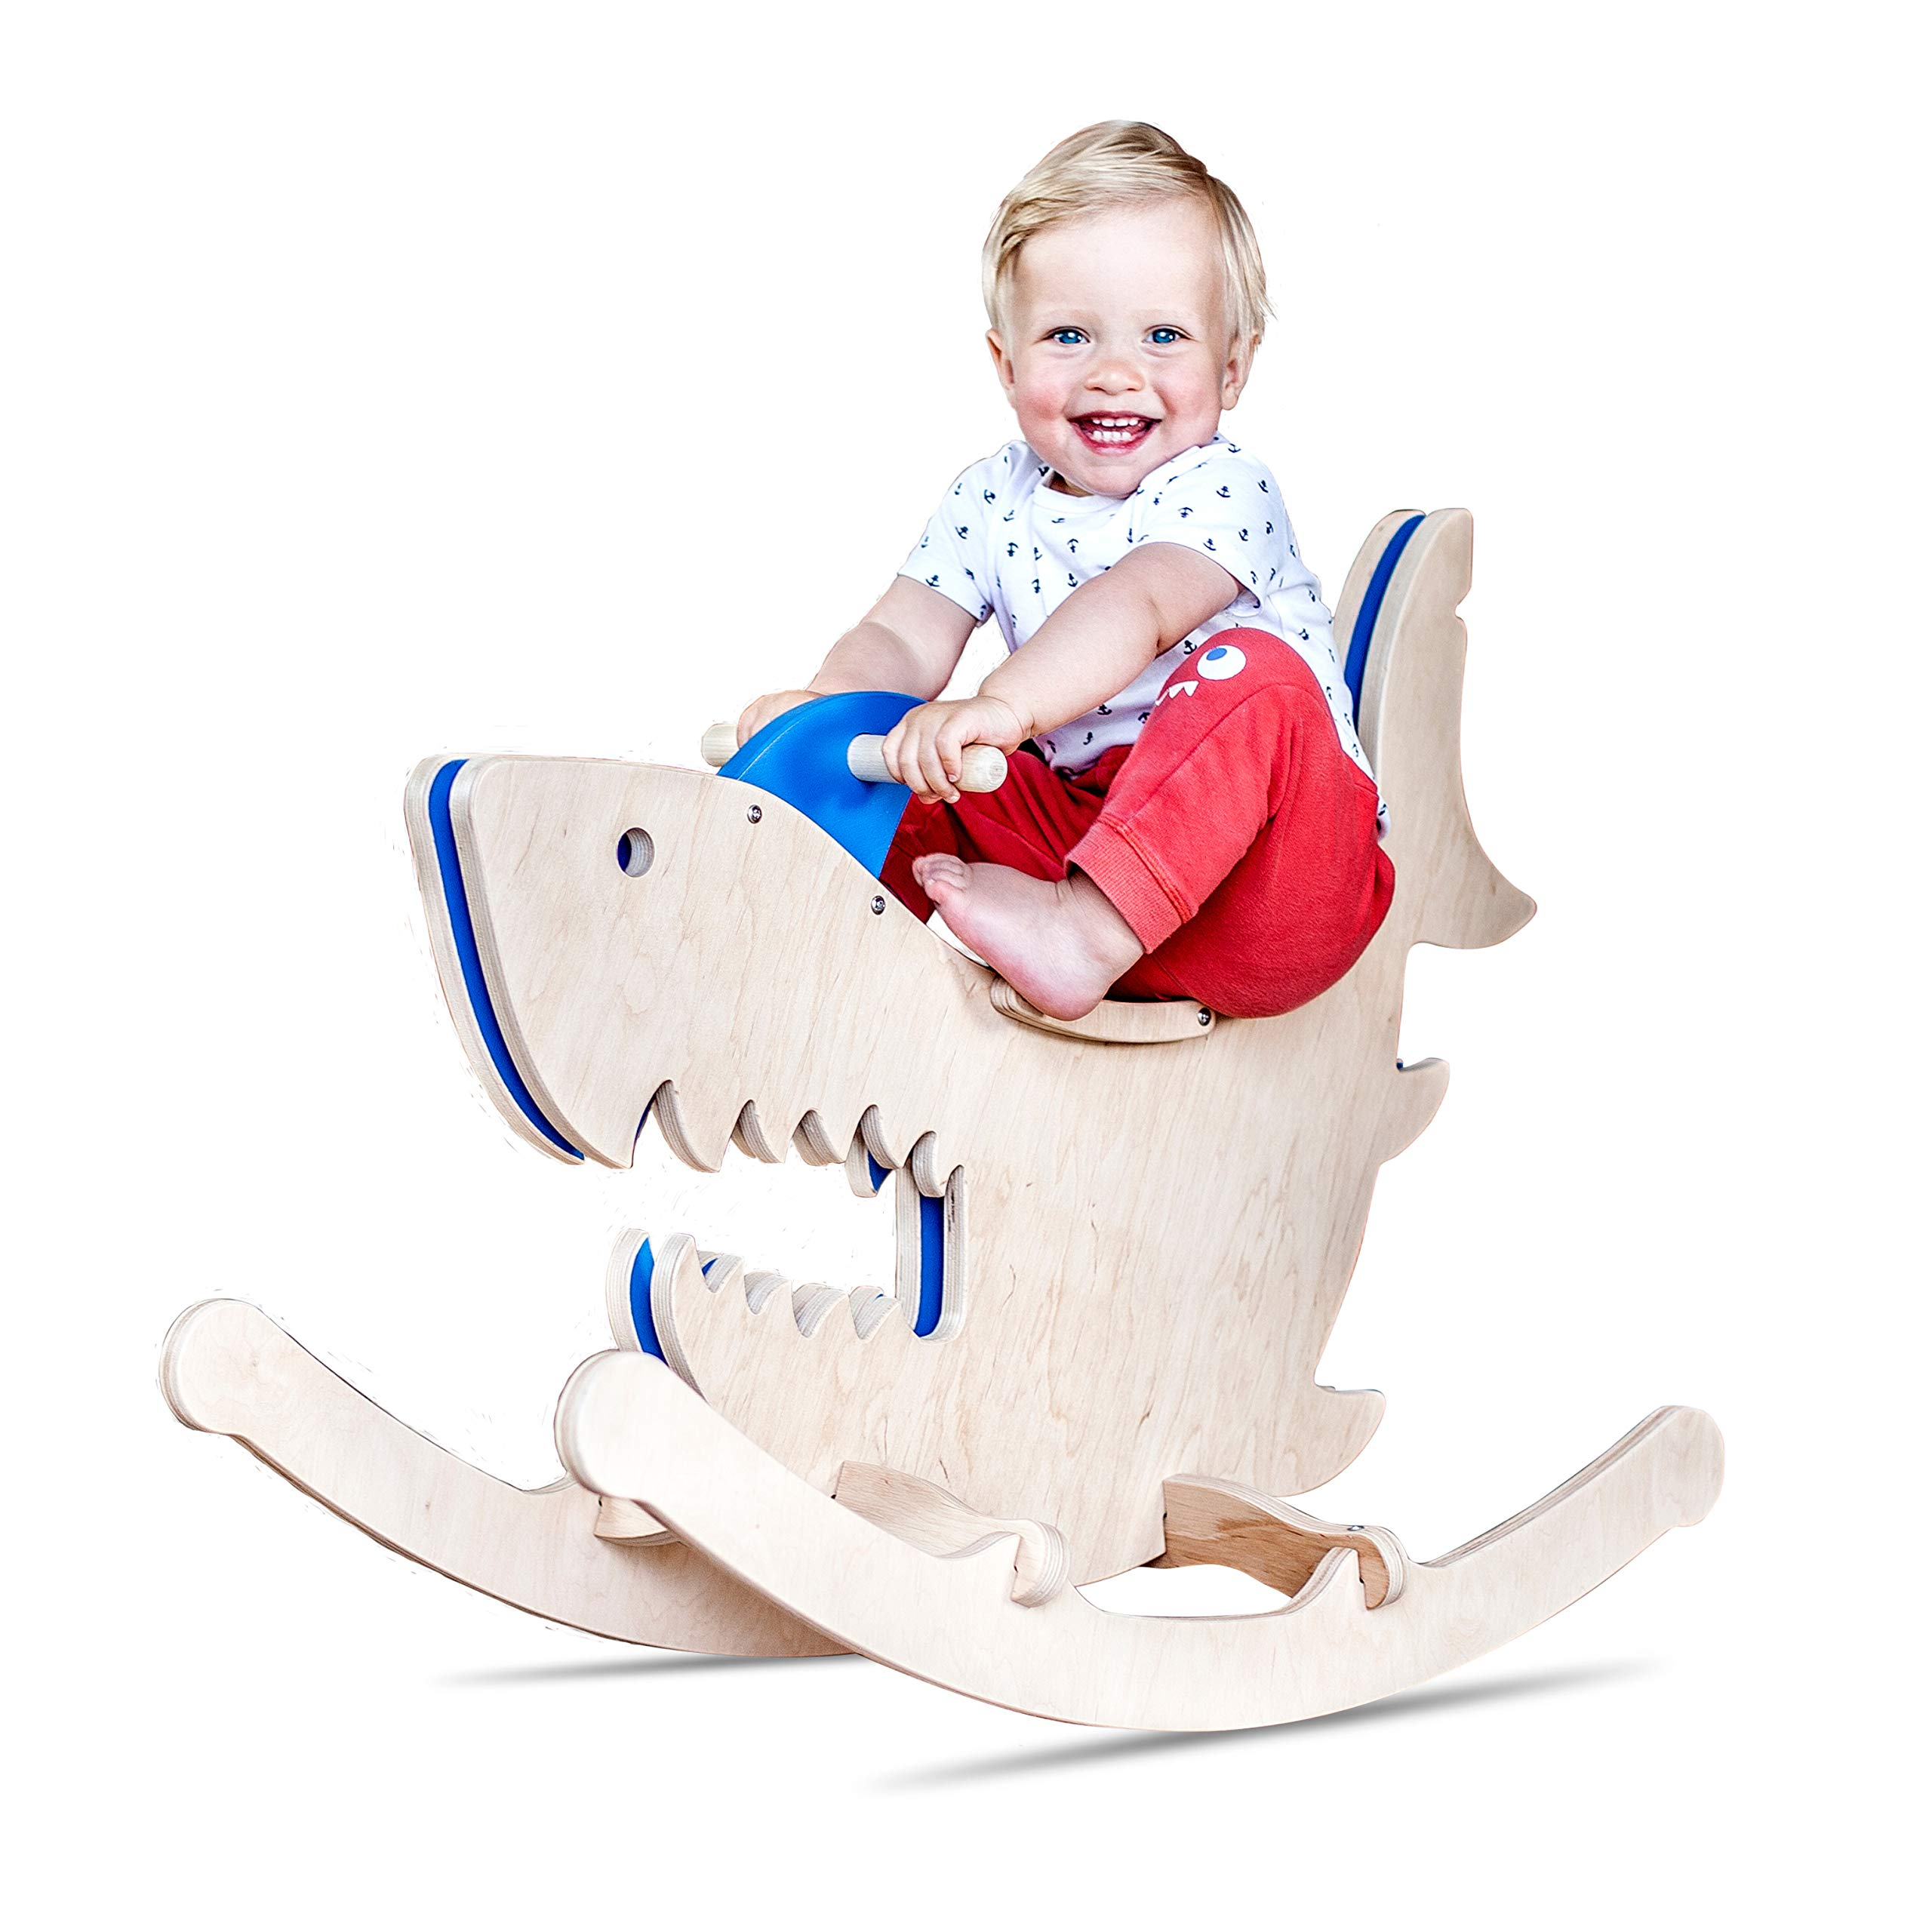 Linen Art Rocking Monsters Toys - Ride-On Animals for Kids - New Type of Wooden Rocking Horses (Shark)